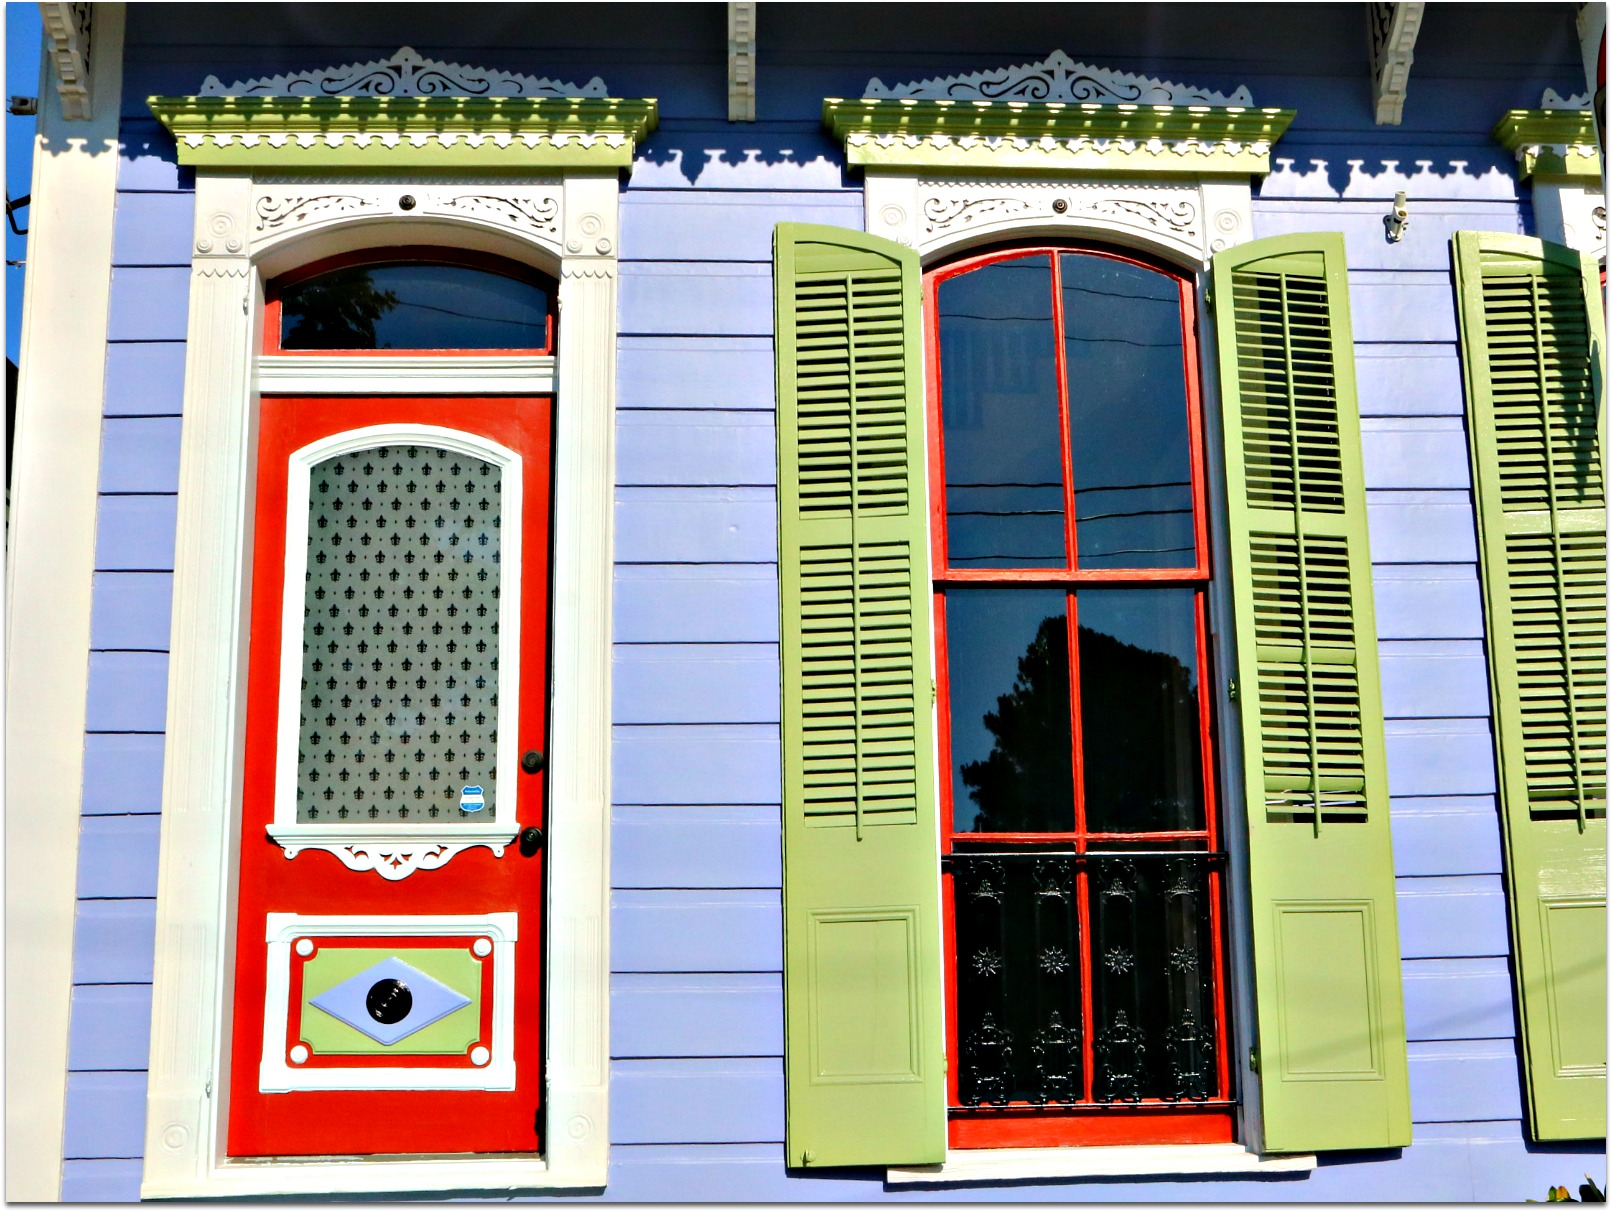 ... doors and shutters on the street. You see more and more attractive colors and more time spent by owners to show off their homes and works of art. Wow! & Bywater Homes Doors Windows and Shutters are Colorful ! - Nola ... pezcame.com